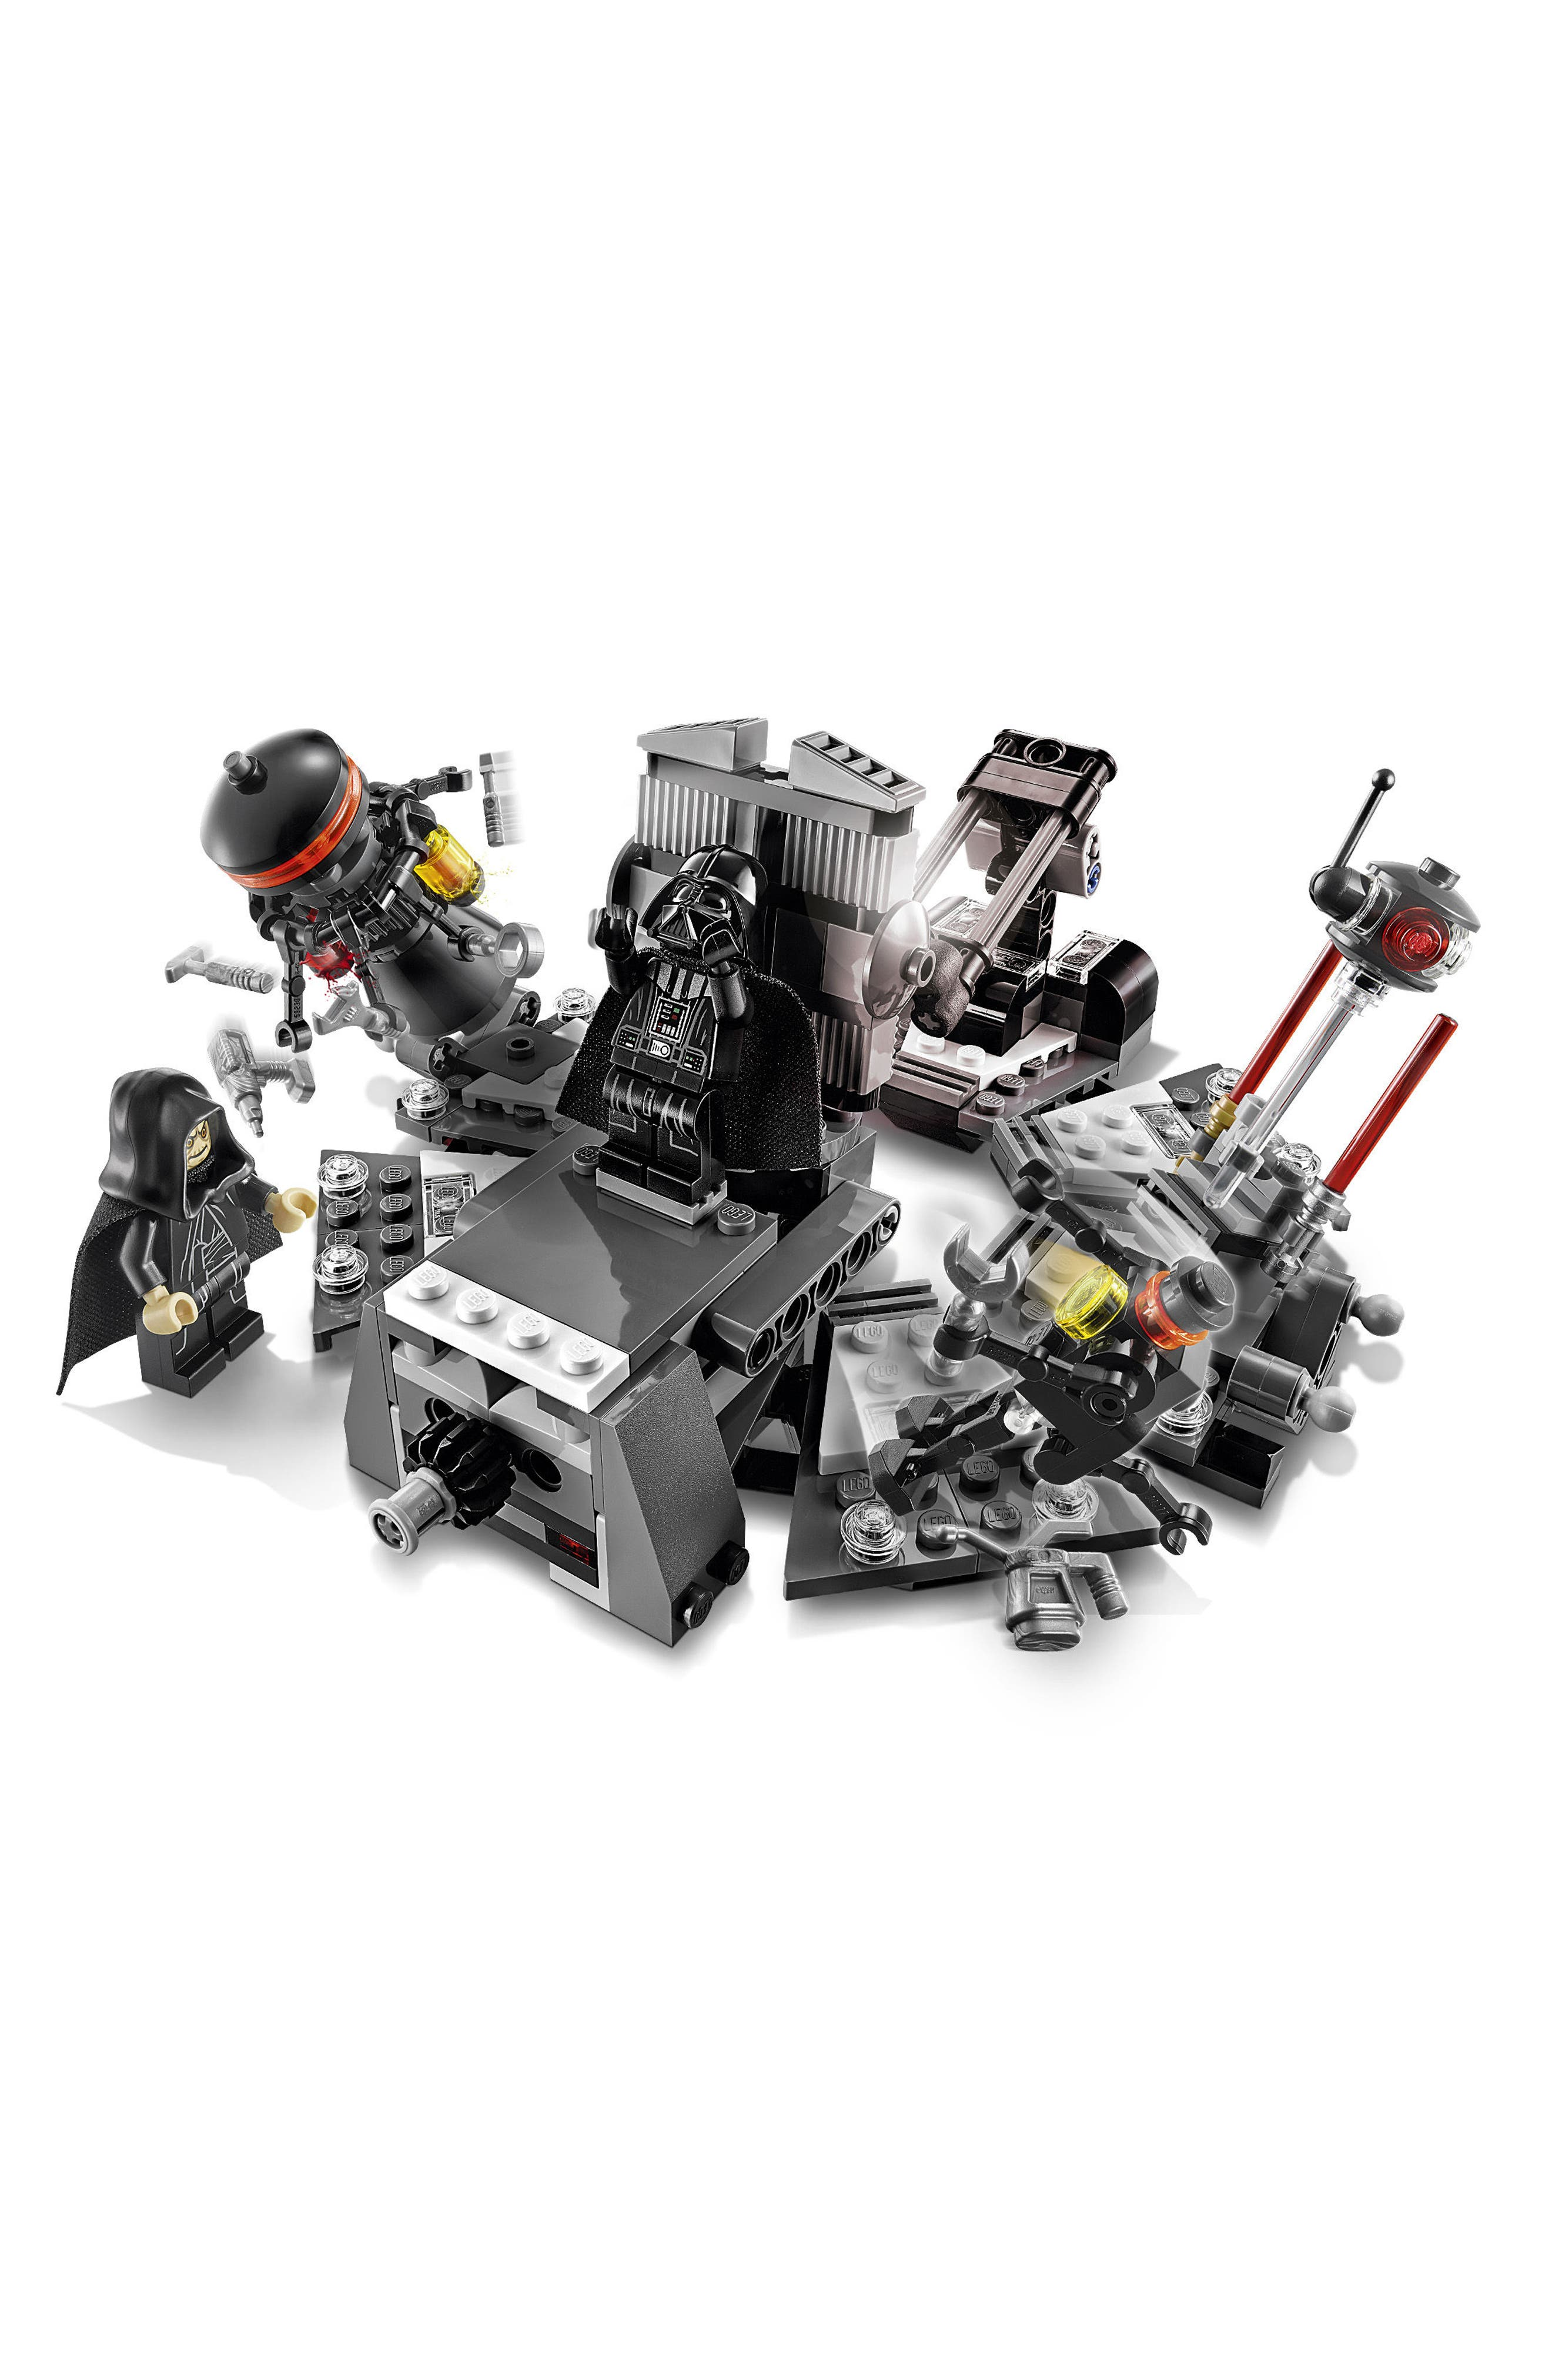 Star Wars<sup>™</sup> Revenge of the Sith Darth Vader Transformation - 75183,                             Alternate thumbnail 3, color,                             Multi